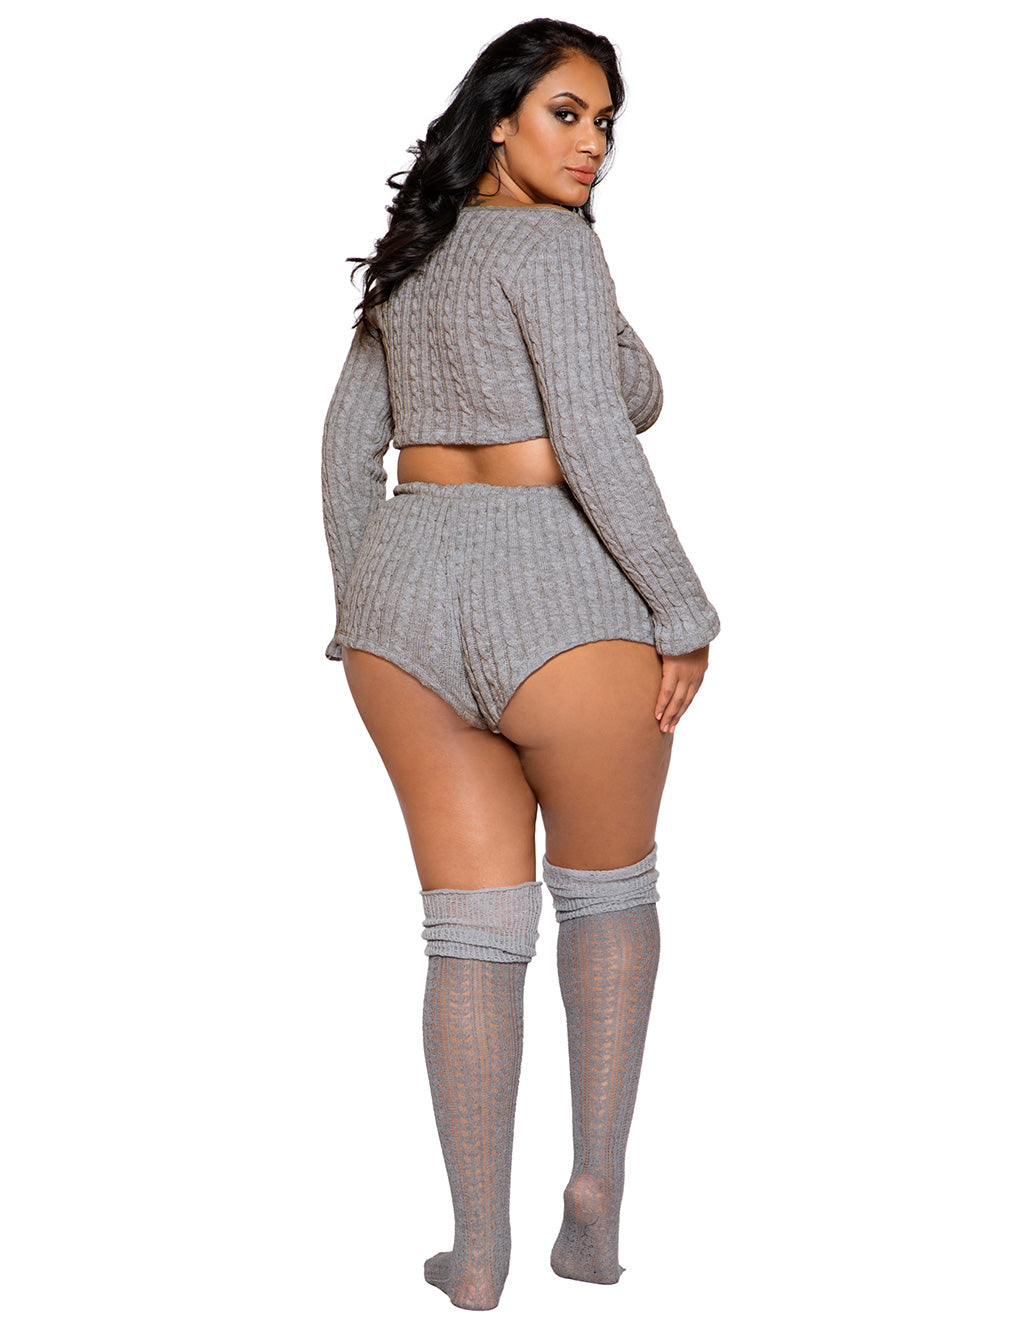 Cozy And Comfy Pajama Short Set By Roma Costume Plus Size Back